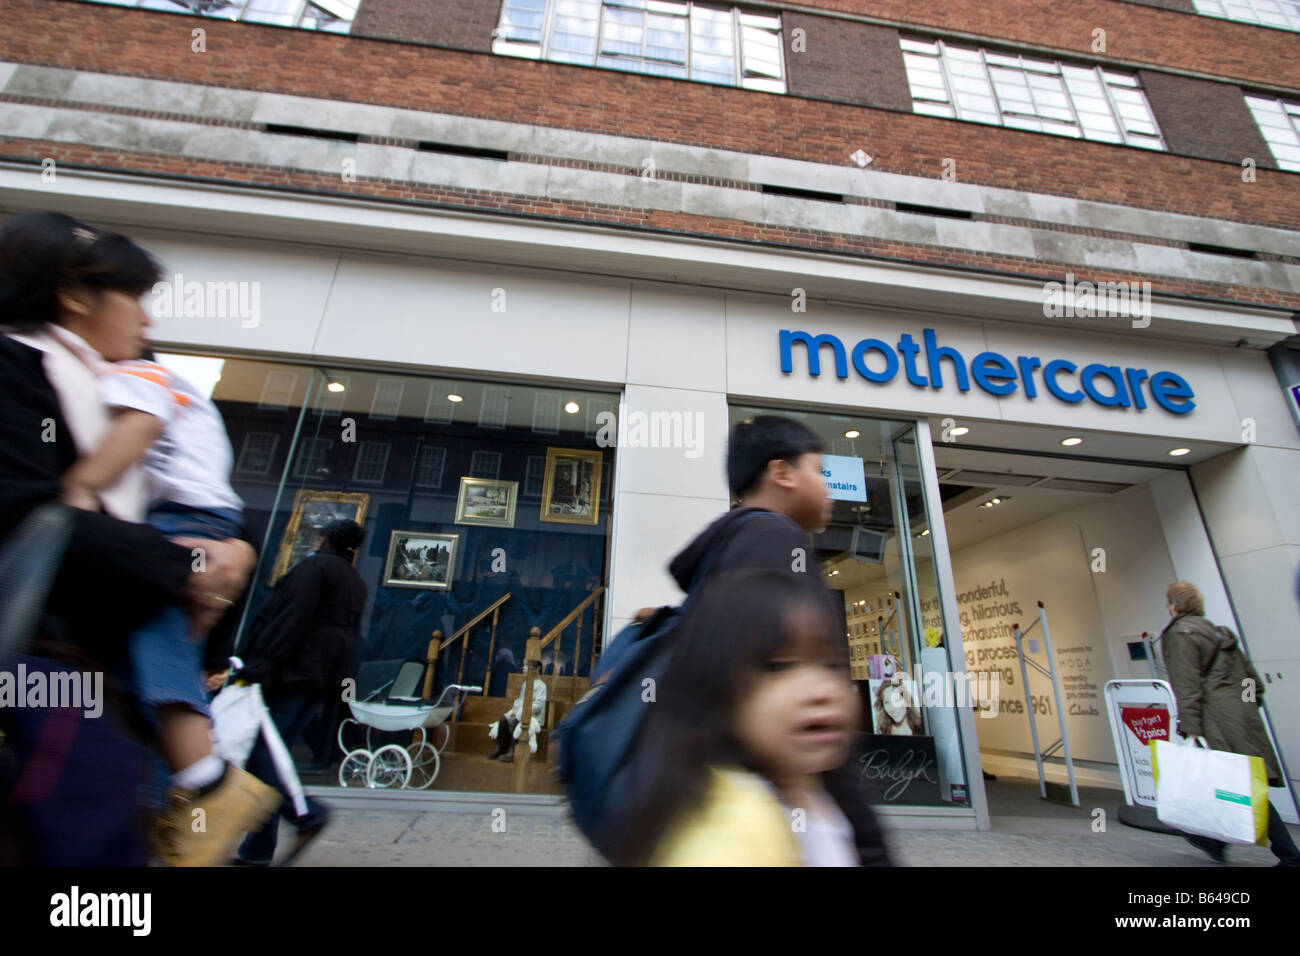 mothercare branch Oxford Street Central London - Stock Image